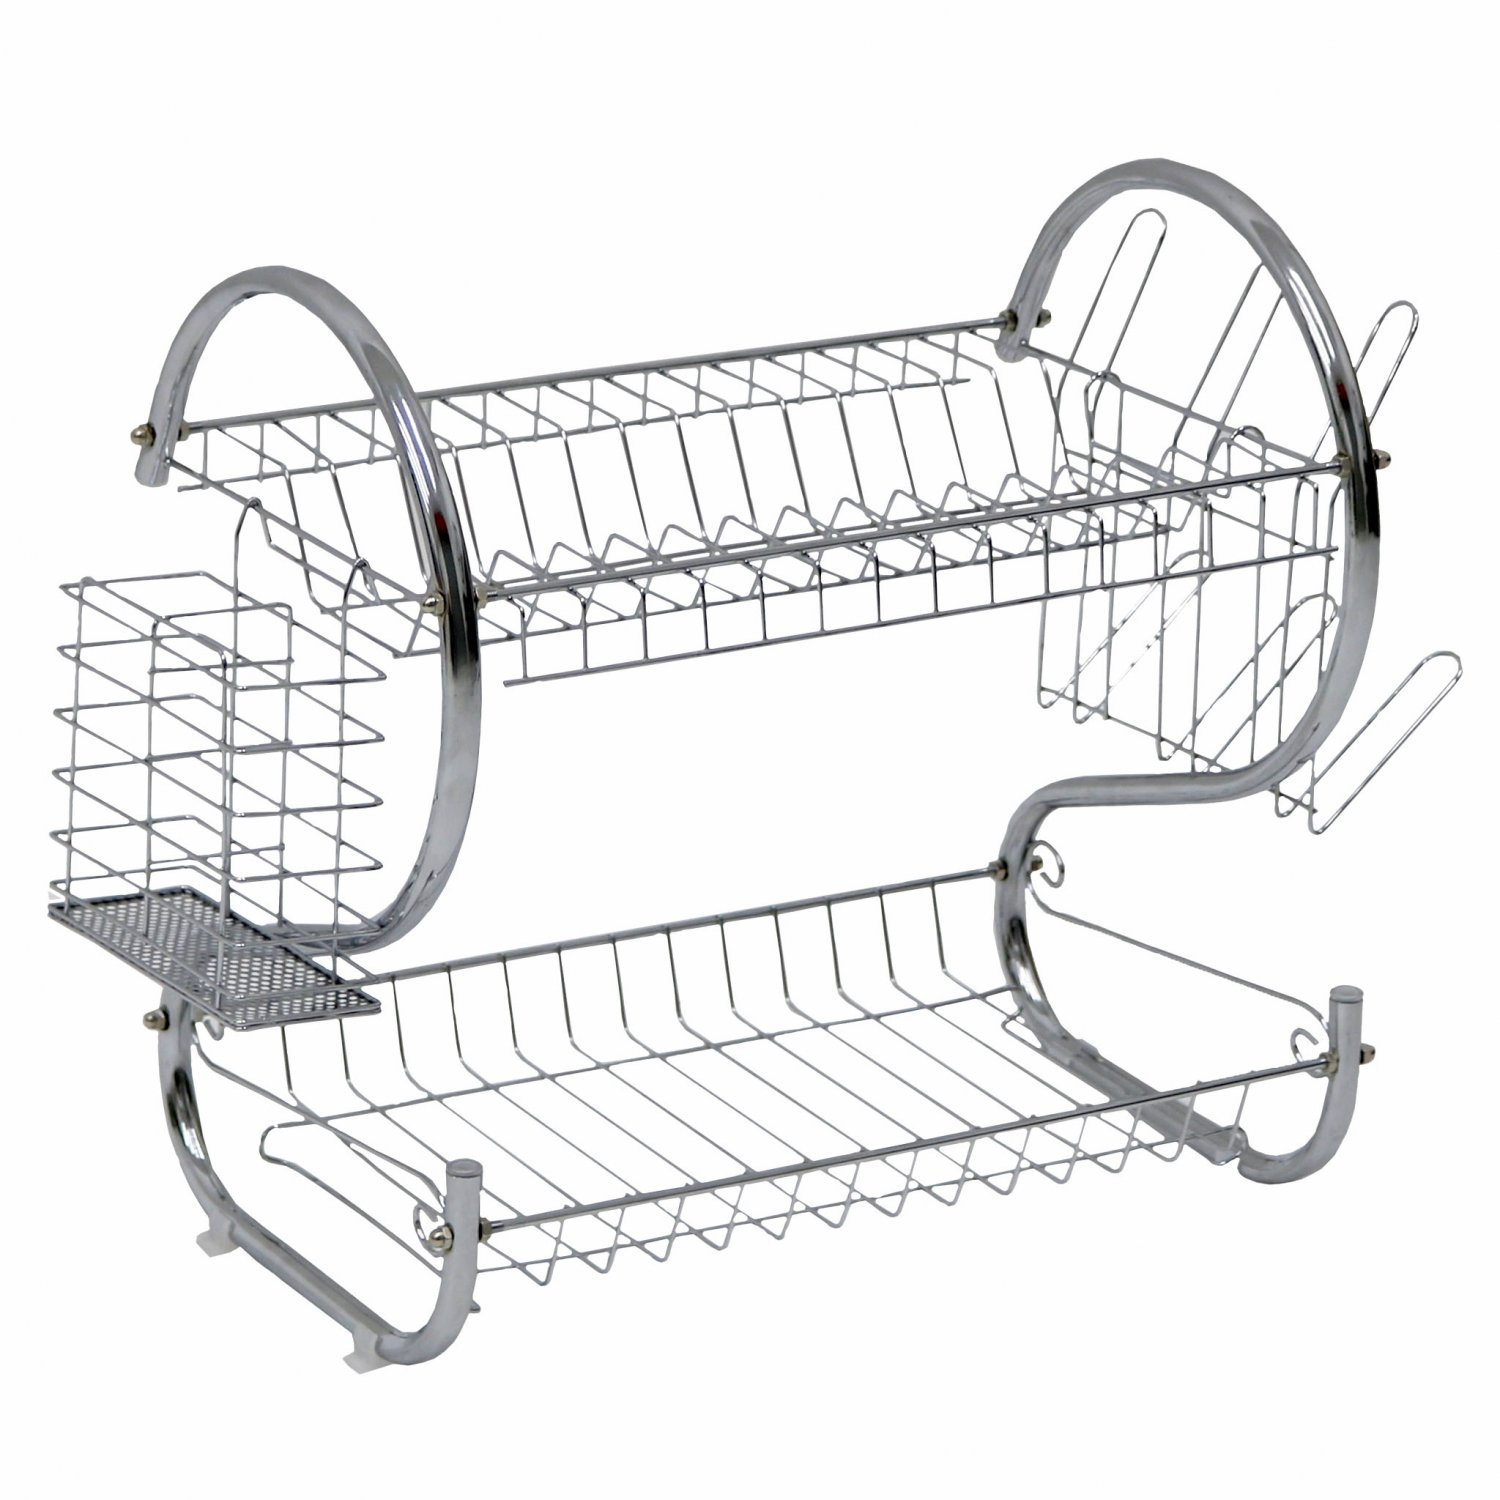 2 Tier Chrome Dish Drainer Plate Cutlery Rack Holder W